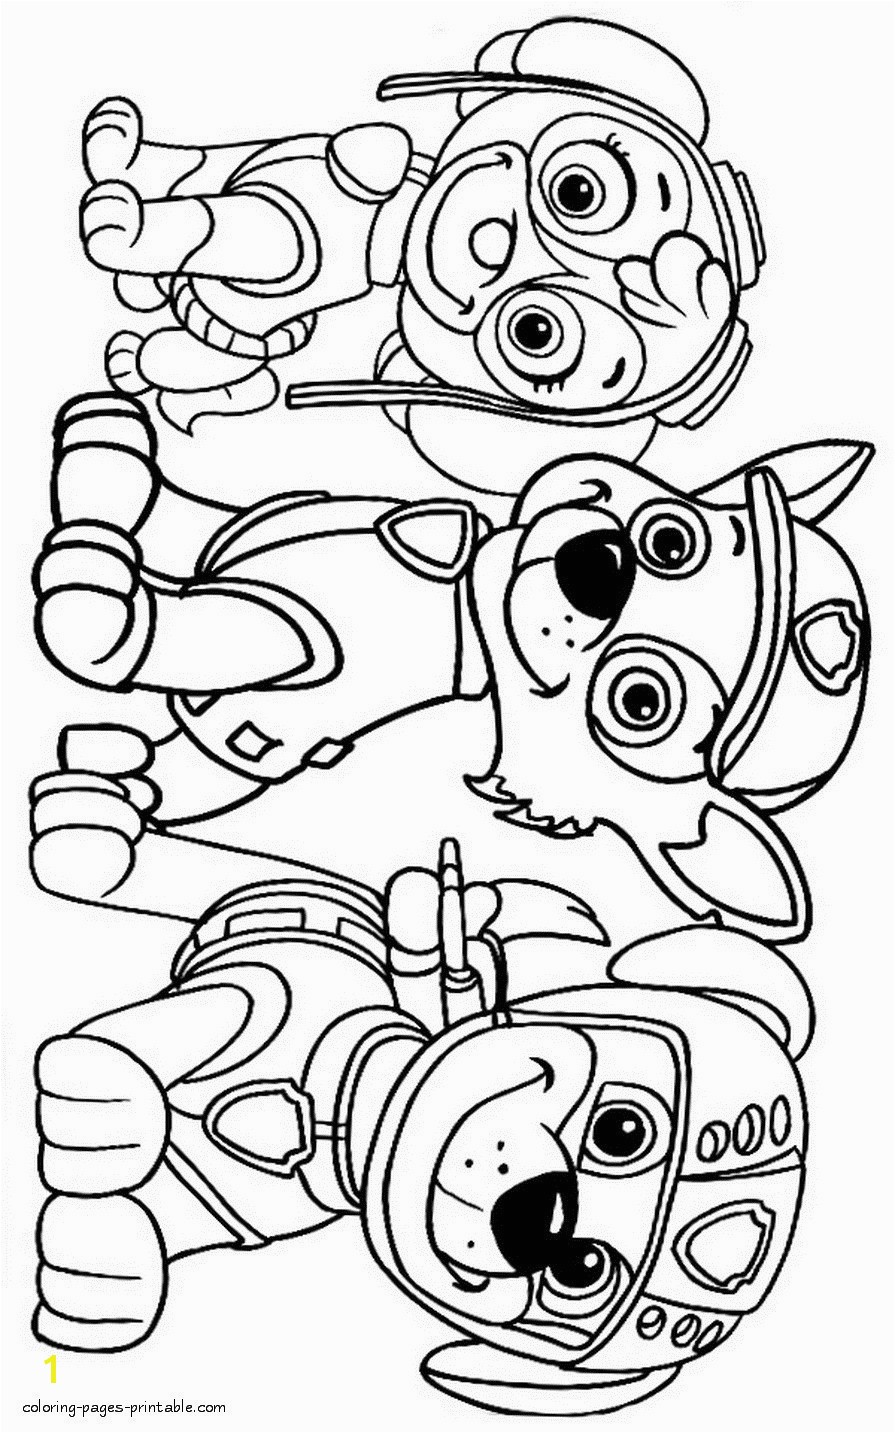 3rd Grade Coloring Pages Printable Best Colouring Worksheets Printable Luxury Real Puppy Coloring Pages graph